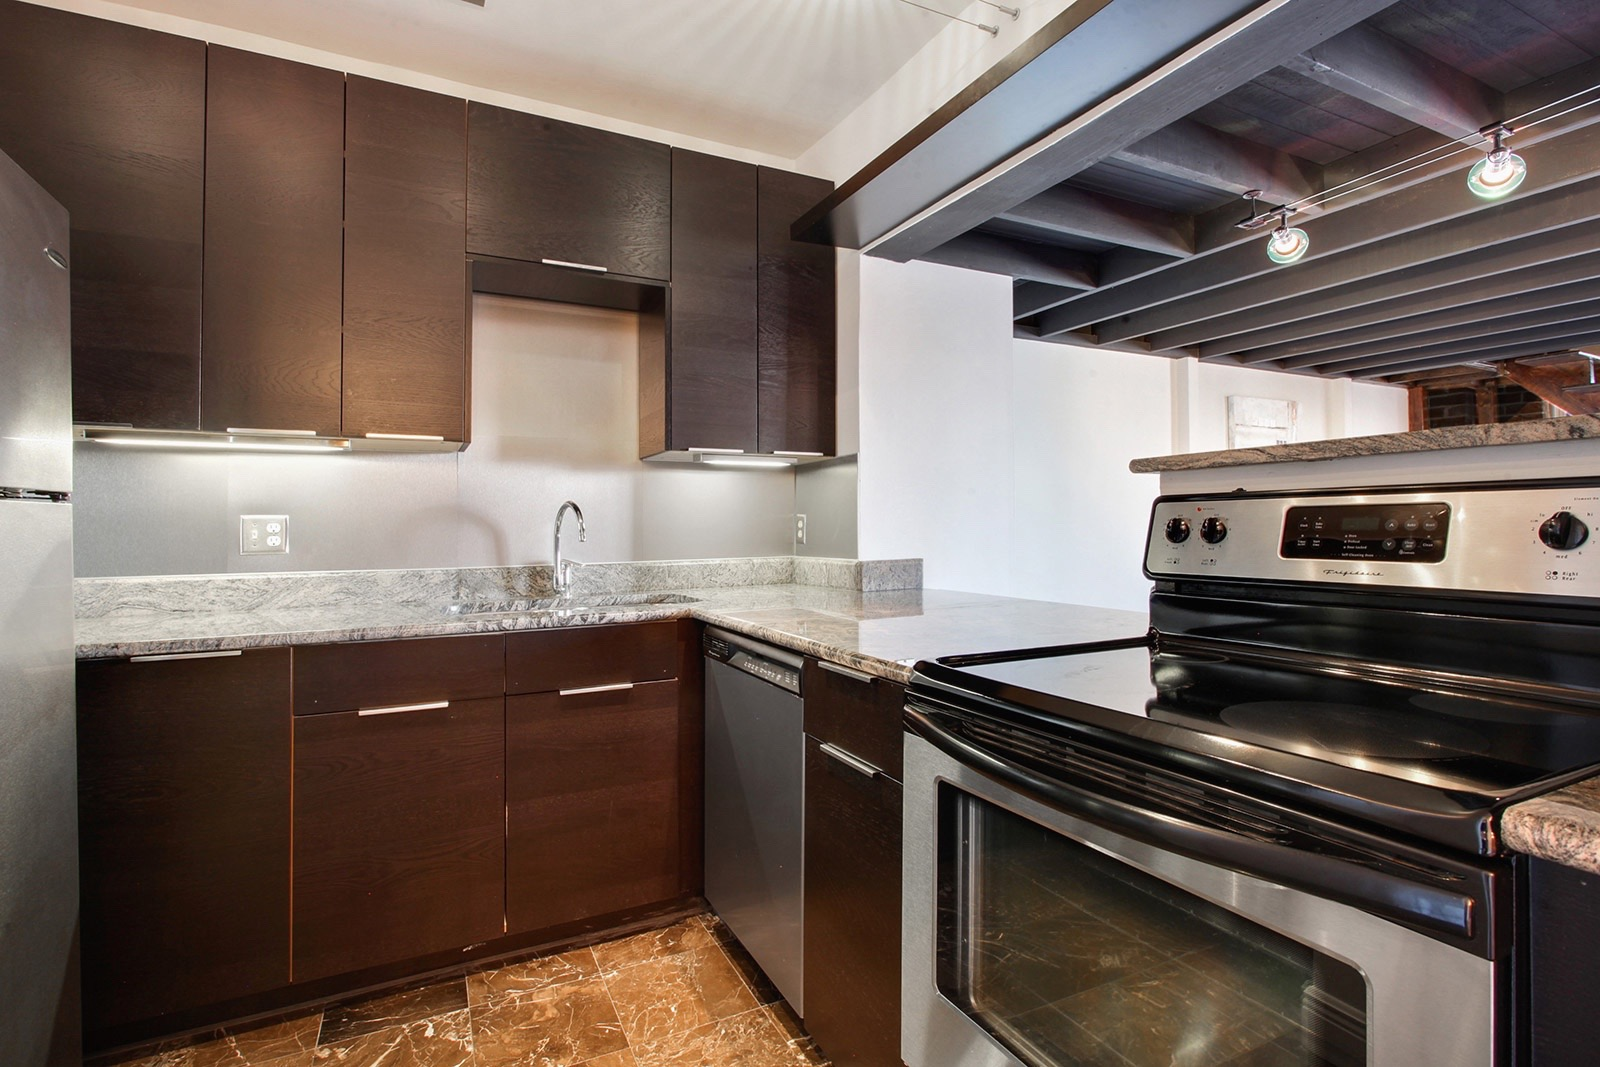 Heated Kitchen Floor Warehouse District Open Floor Condominium Asks 365k Curbed New